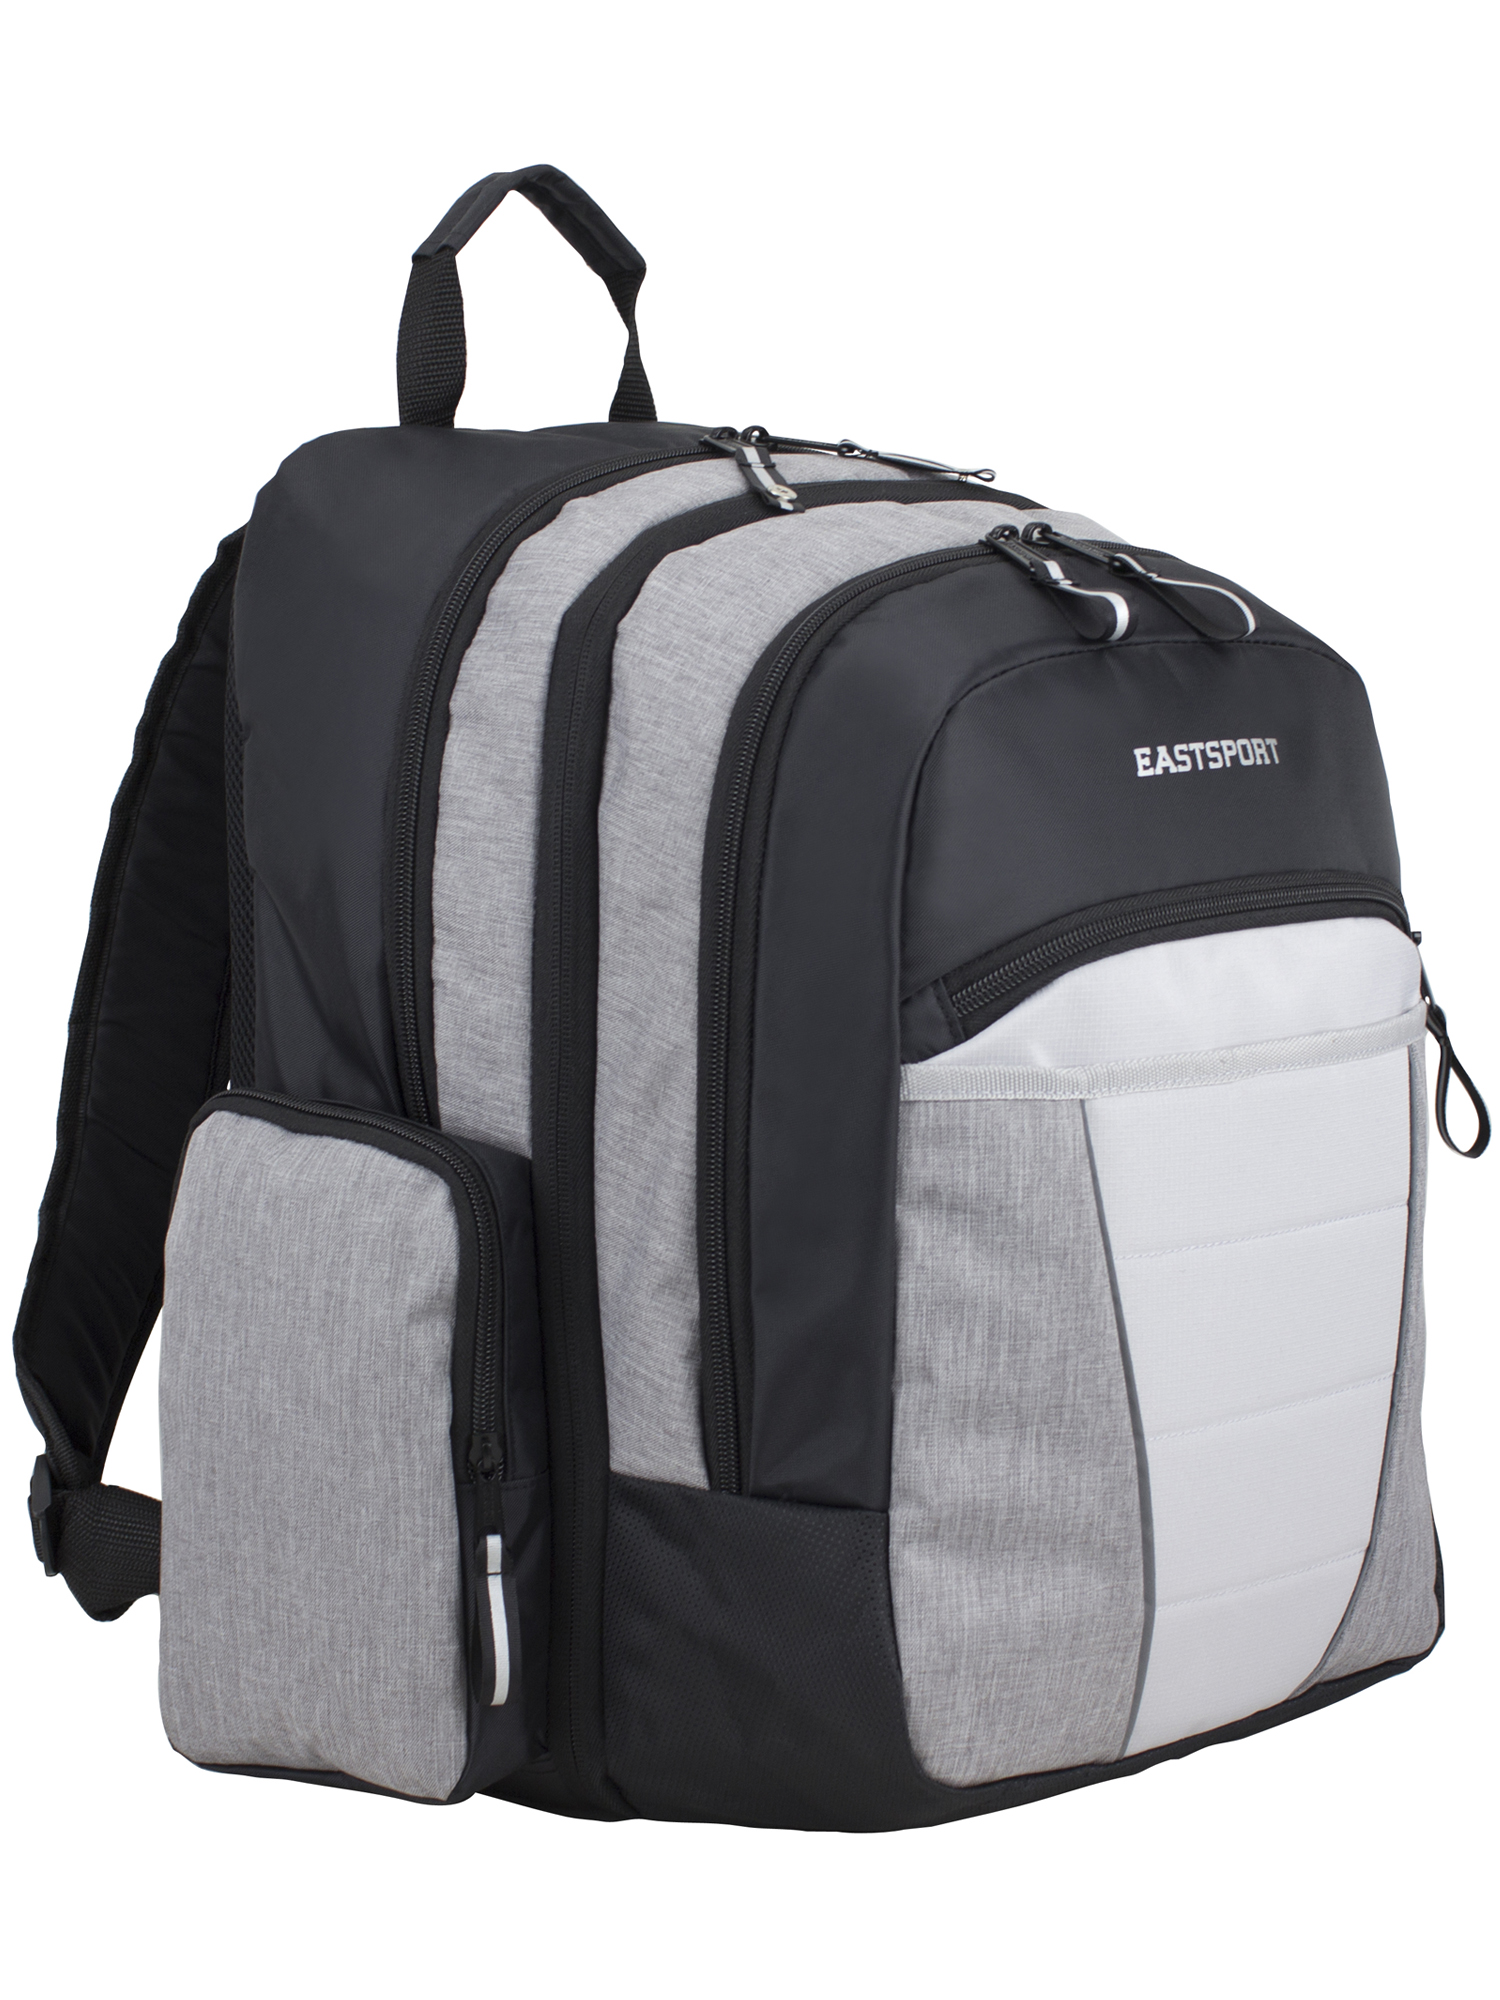 Eastsport Titan 2.0 Expandable Multi Compartment Backpack with External USB Charging Port